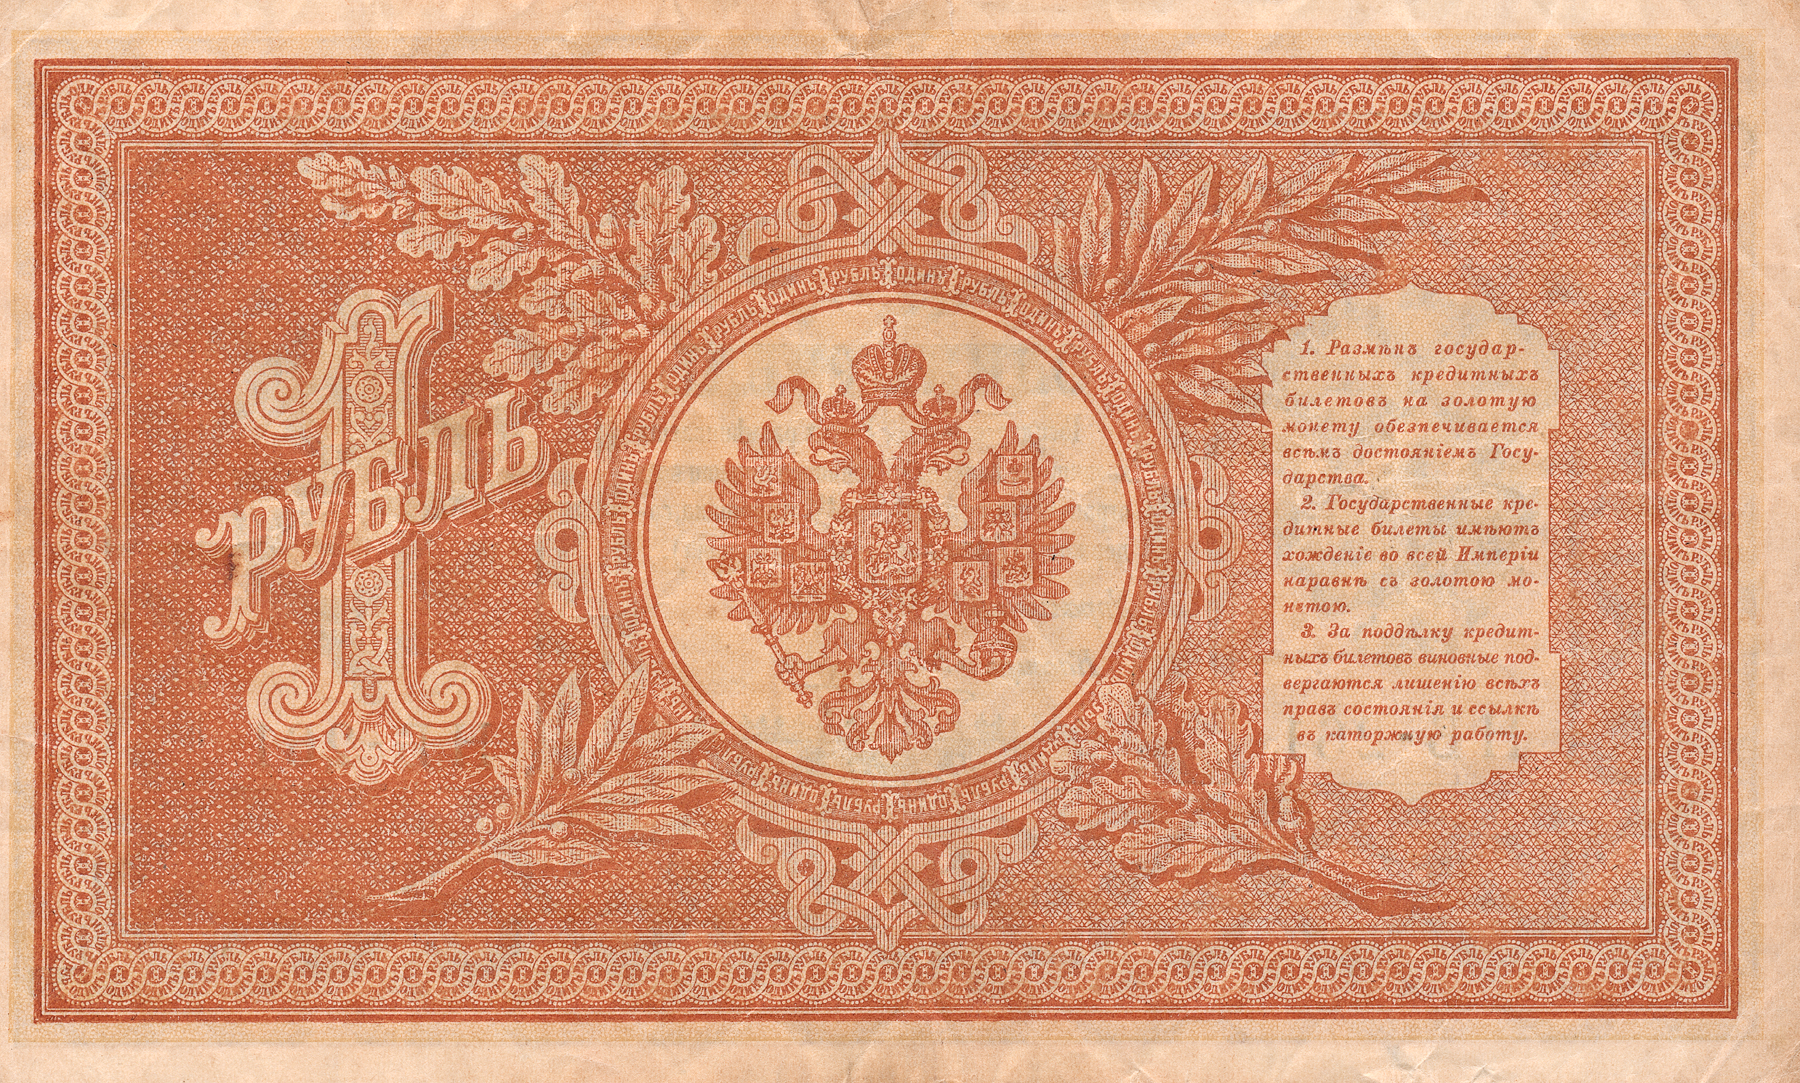 Antique Banknote - Imperial Russia, Numismatics, Picture, Payment, Pay, HQ Photo